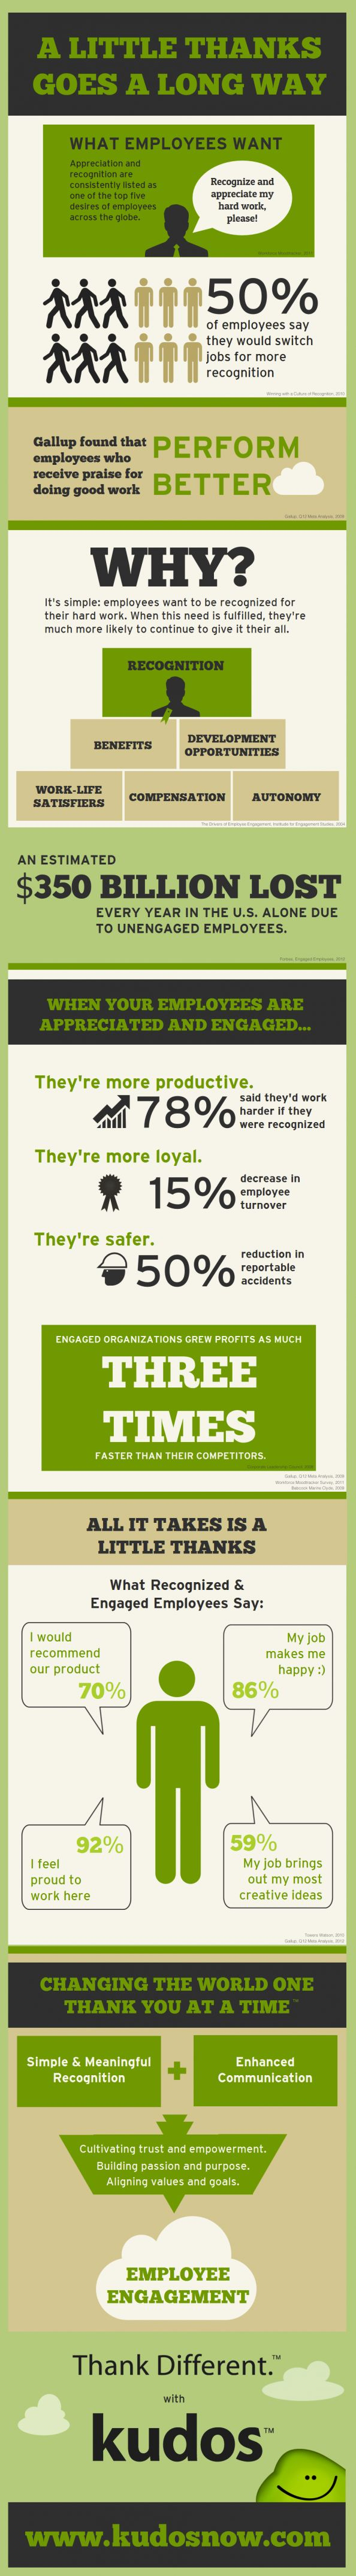 Employers, take a look at this infographic and discover why a little thank you goes a long way with your employees!